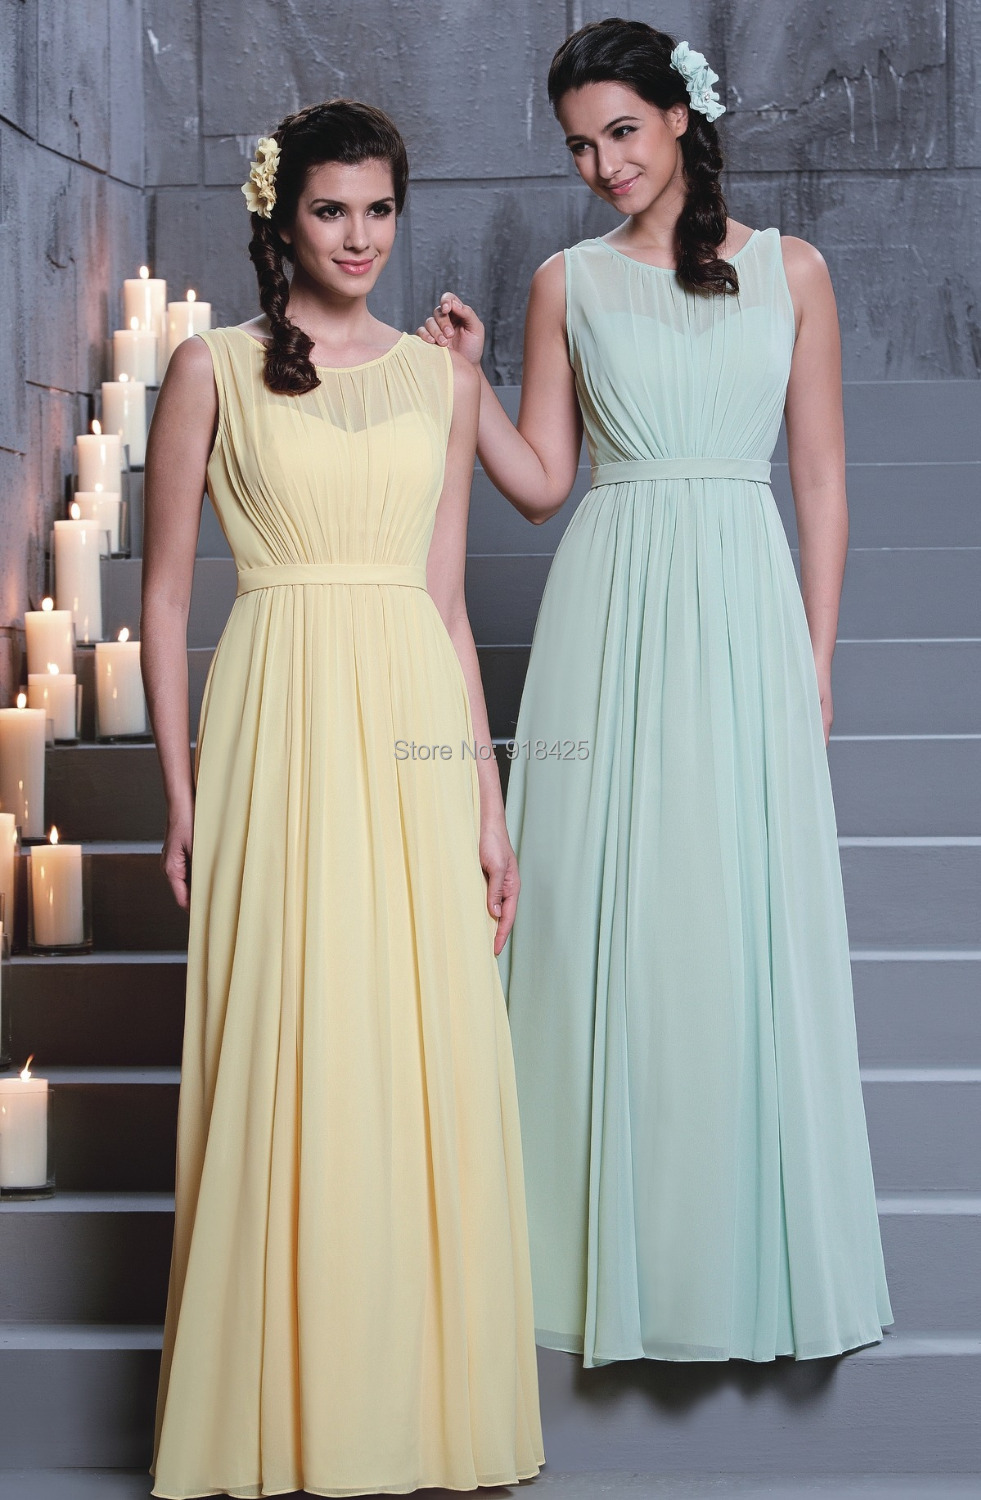 Bridesmaids yellow dresses promotion shop for promotional new arrival illusion neck chiffon long yellowmint green bridesmaid dresses elegant sleeveless for wedding guests mg276 ombrellifo Gallery